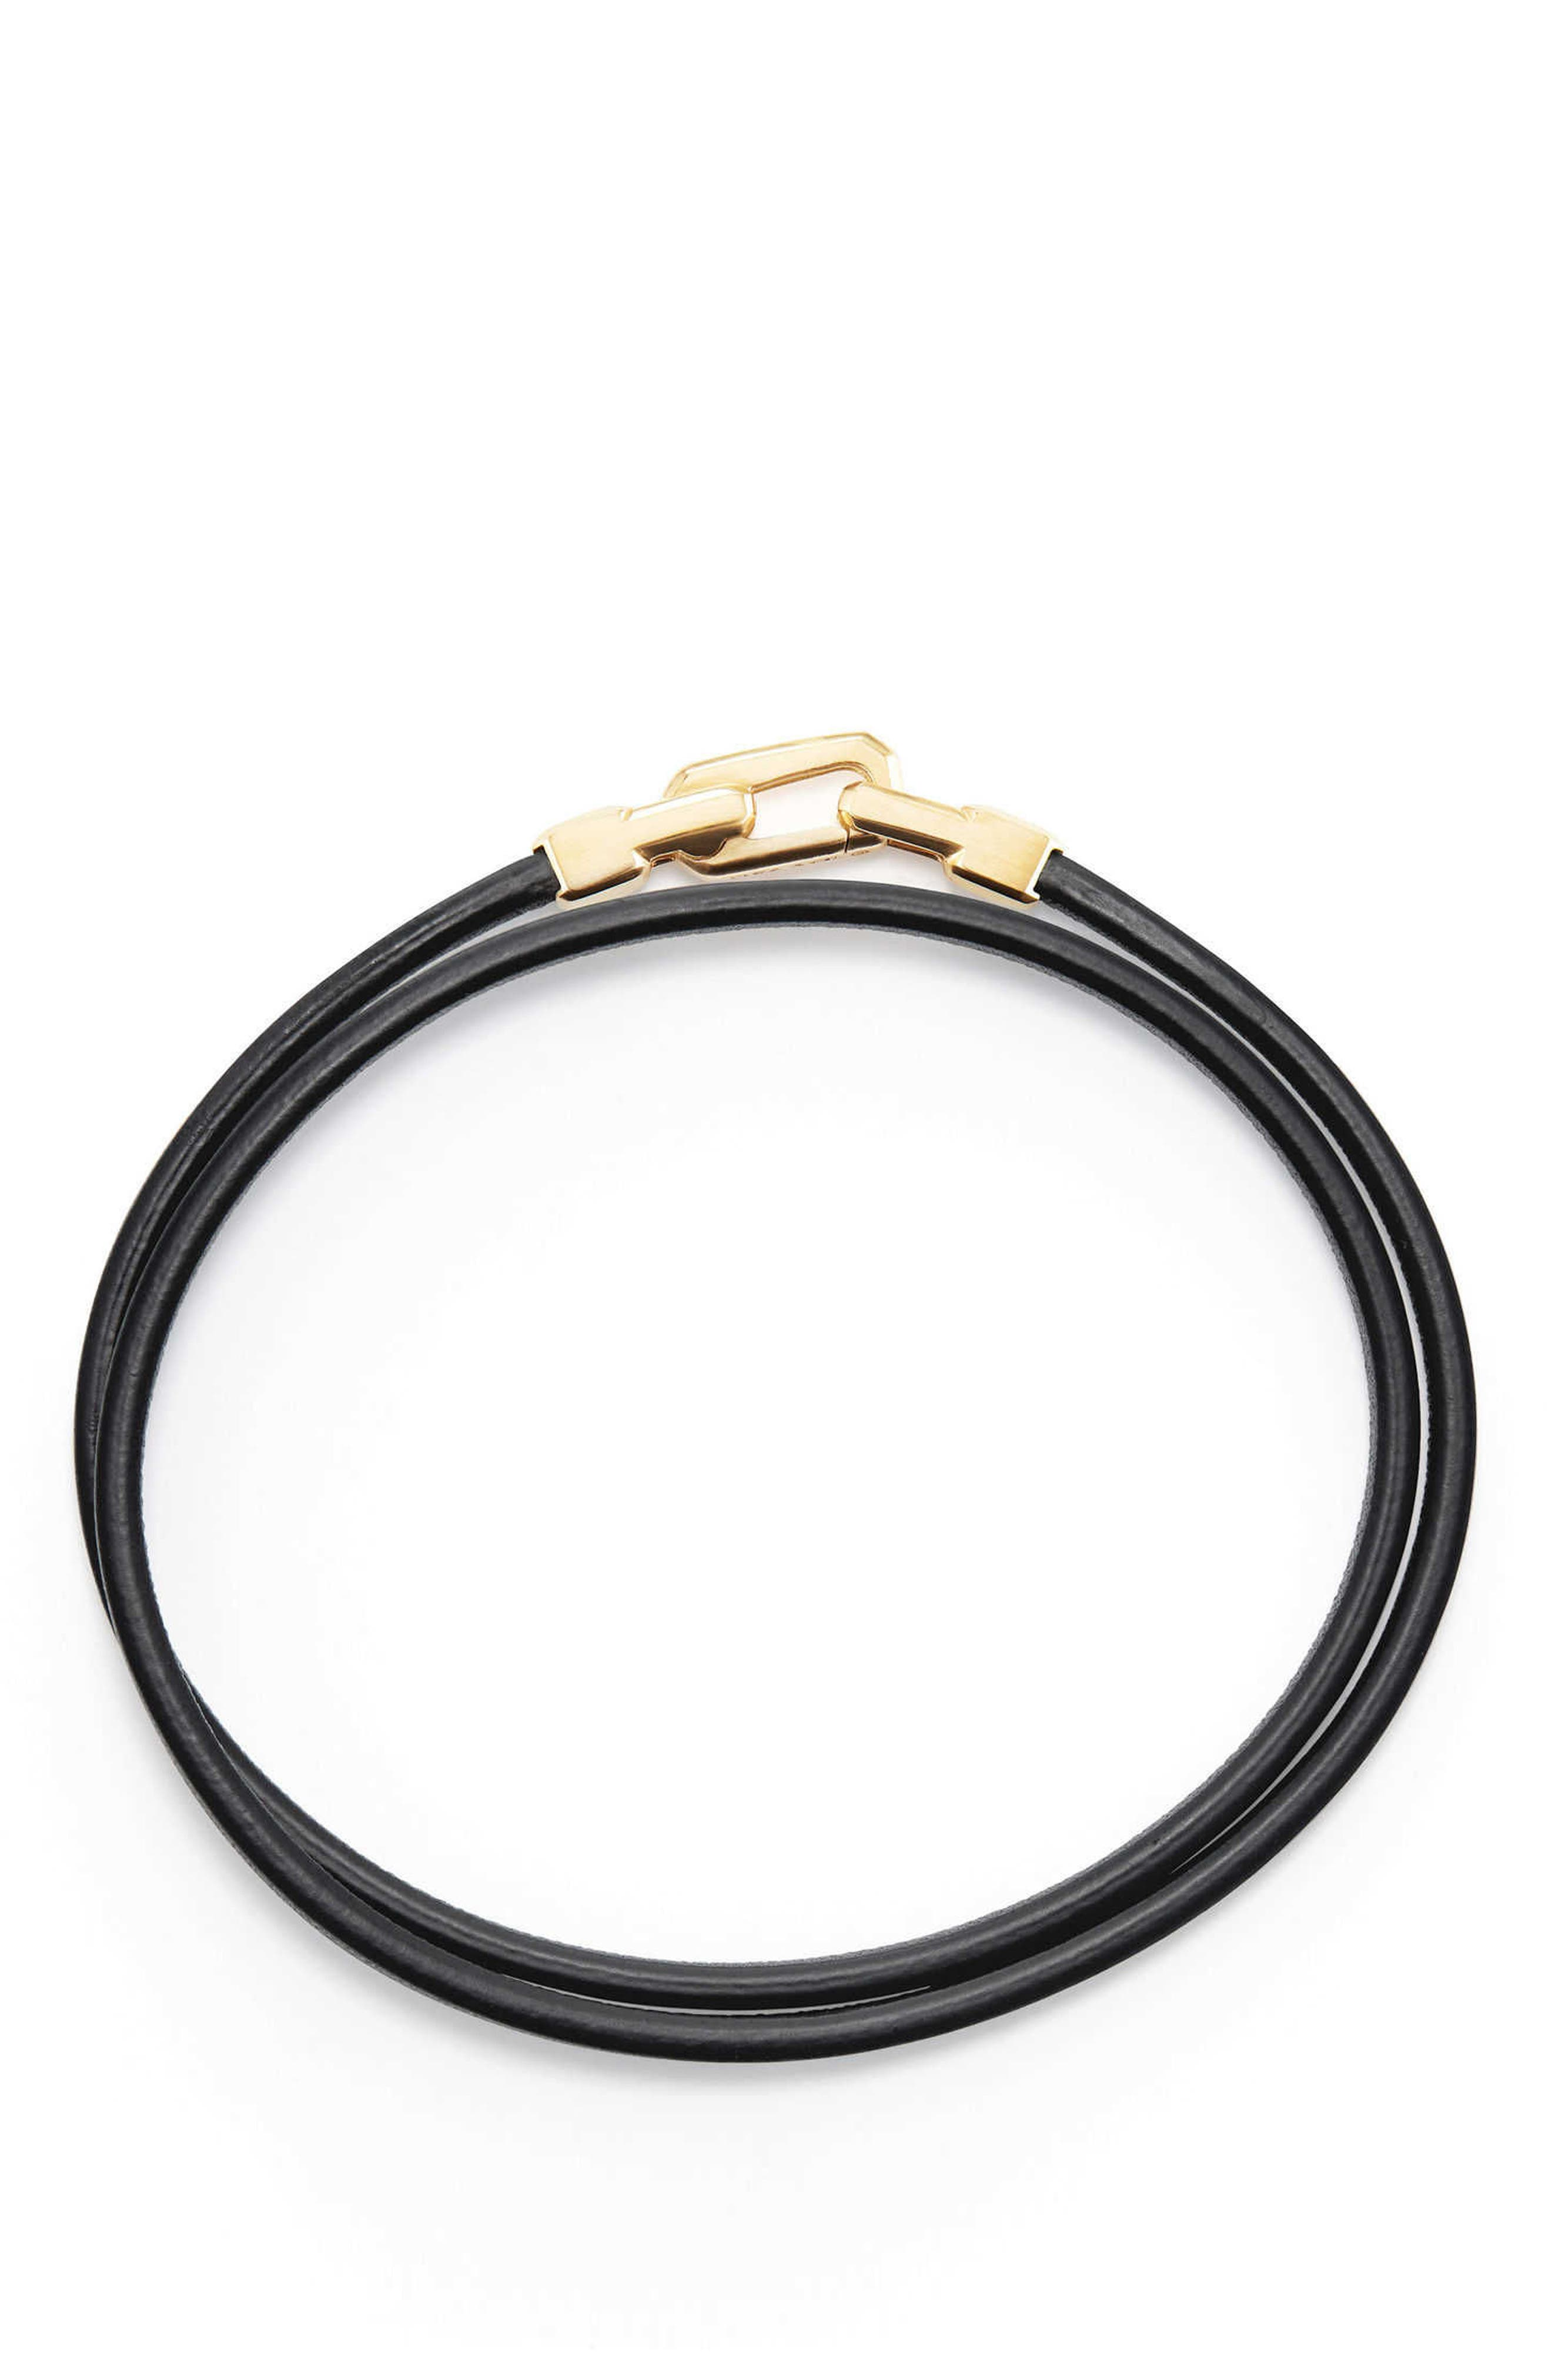 Streamline Double Wrap Leather Bracelet with 18K Gold,                             Alternate thumbnail 2, color,                             710